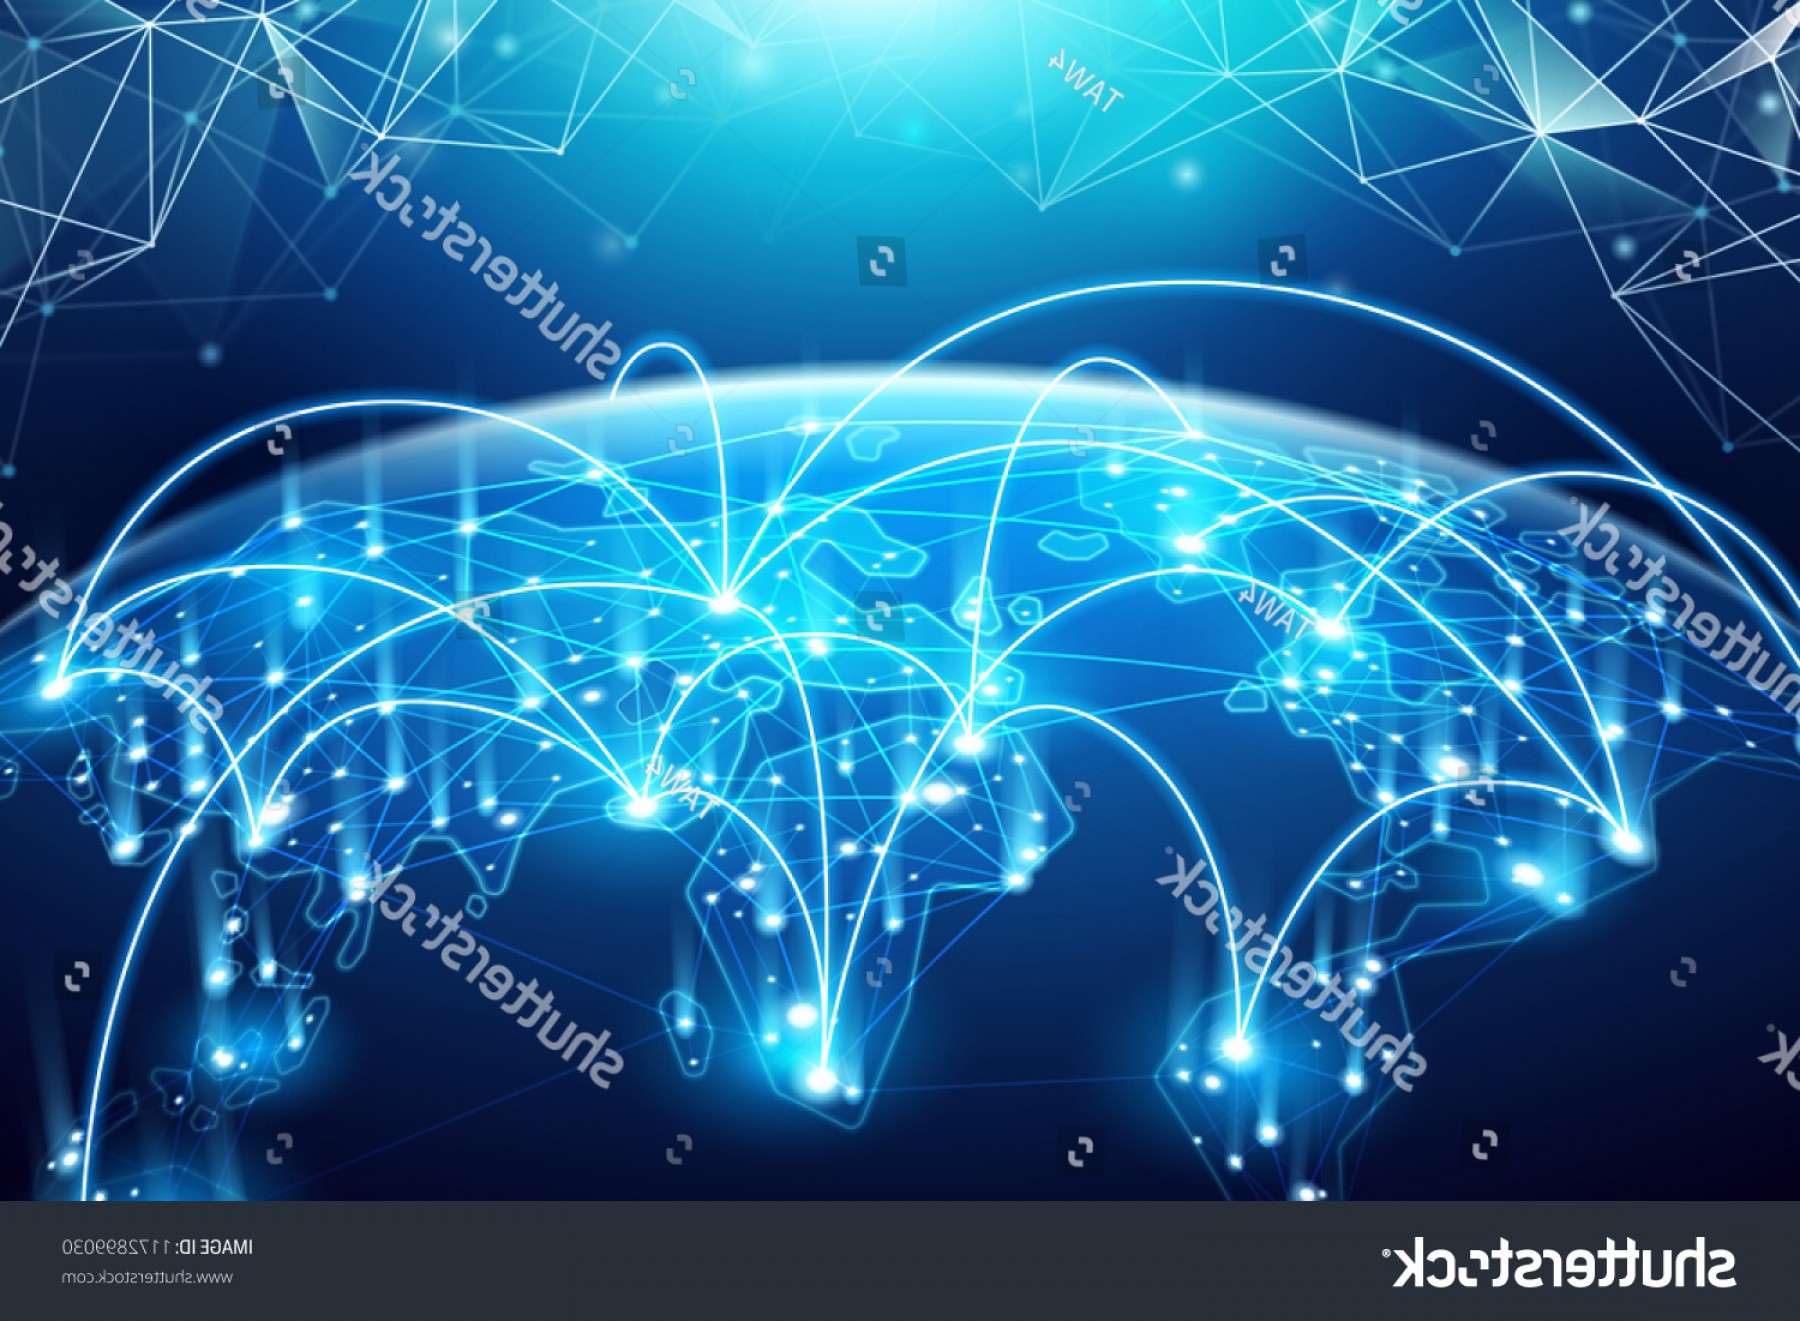 Abstract Vector Art Globe TV: Abstract World Network Internet Global Connection